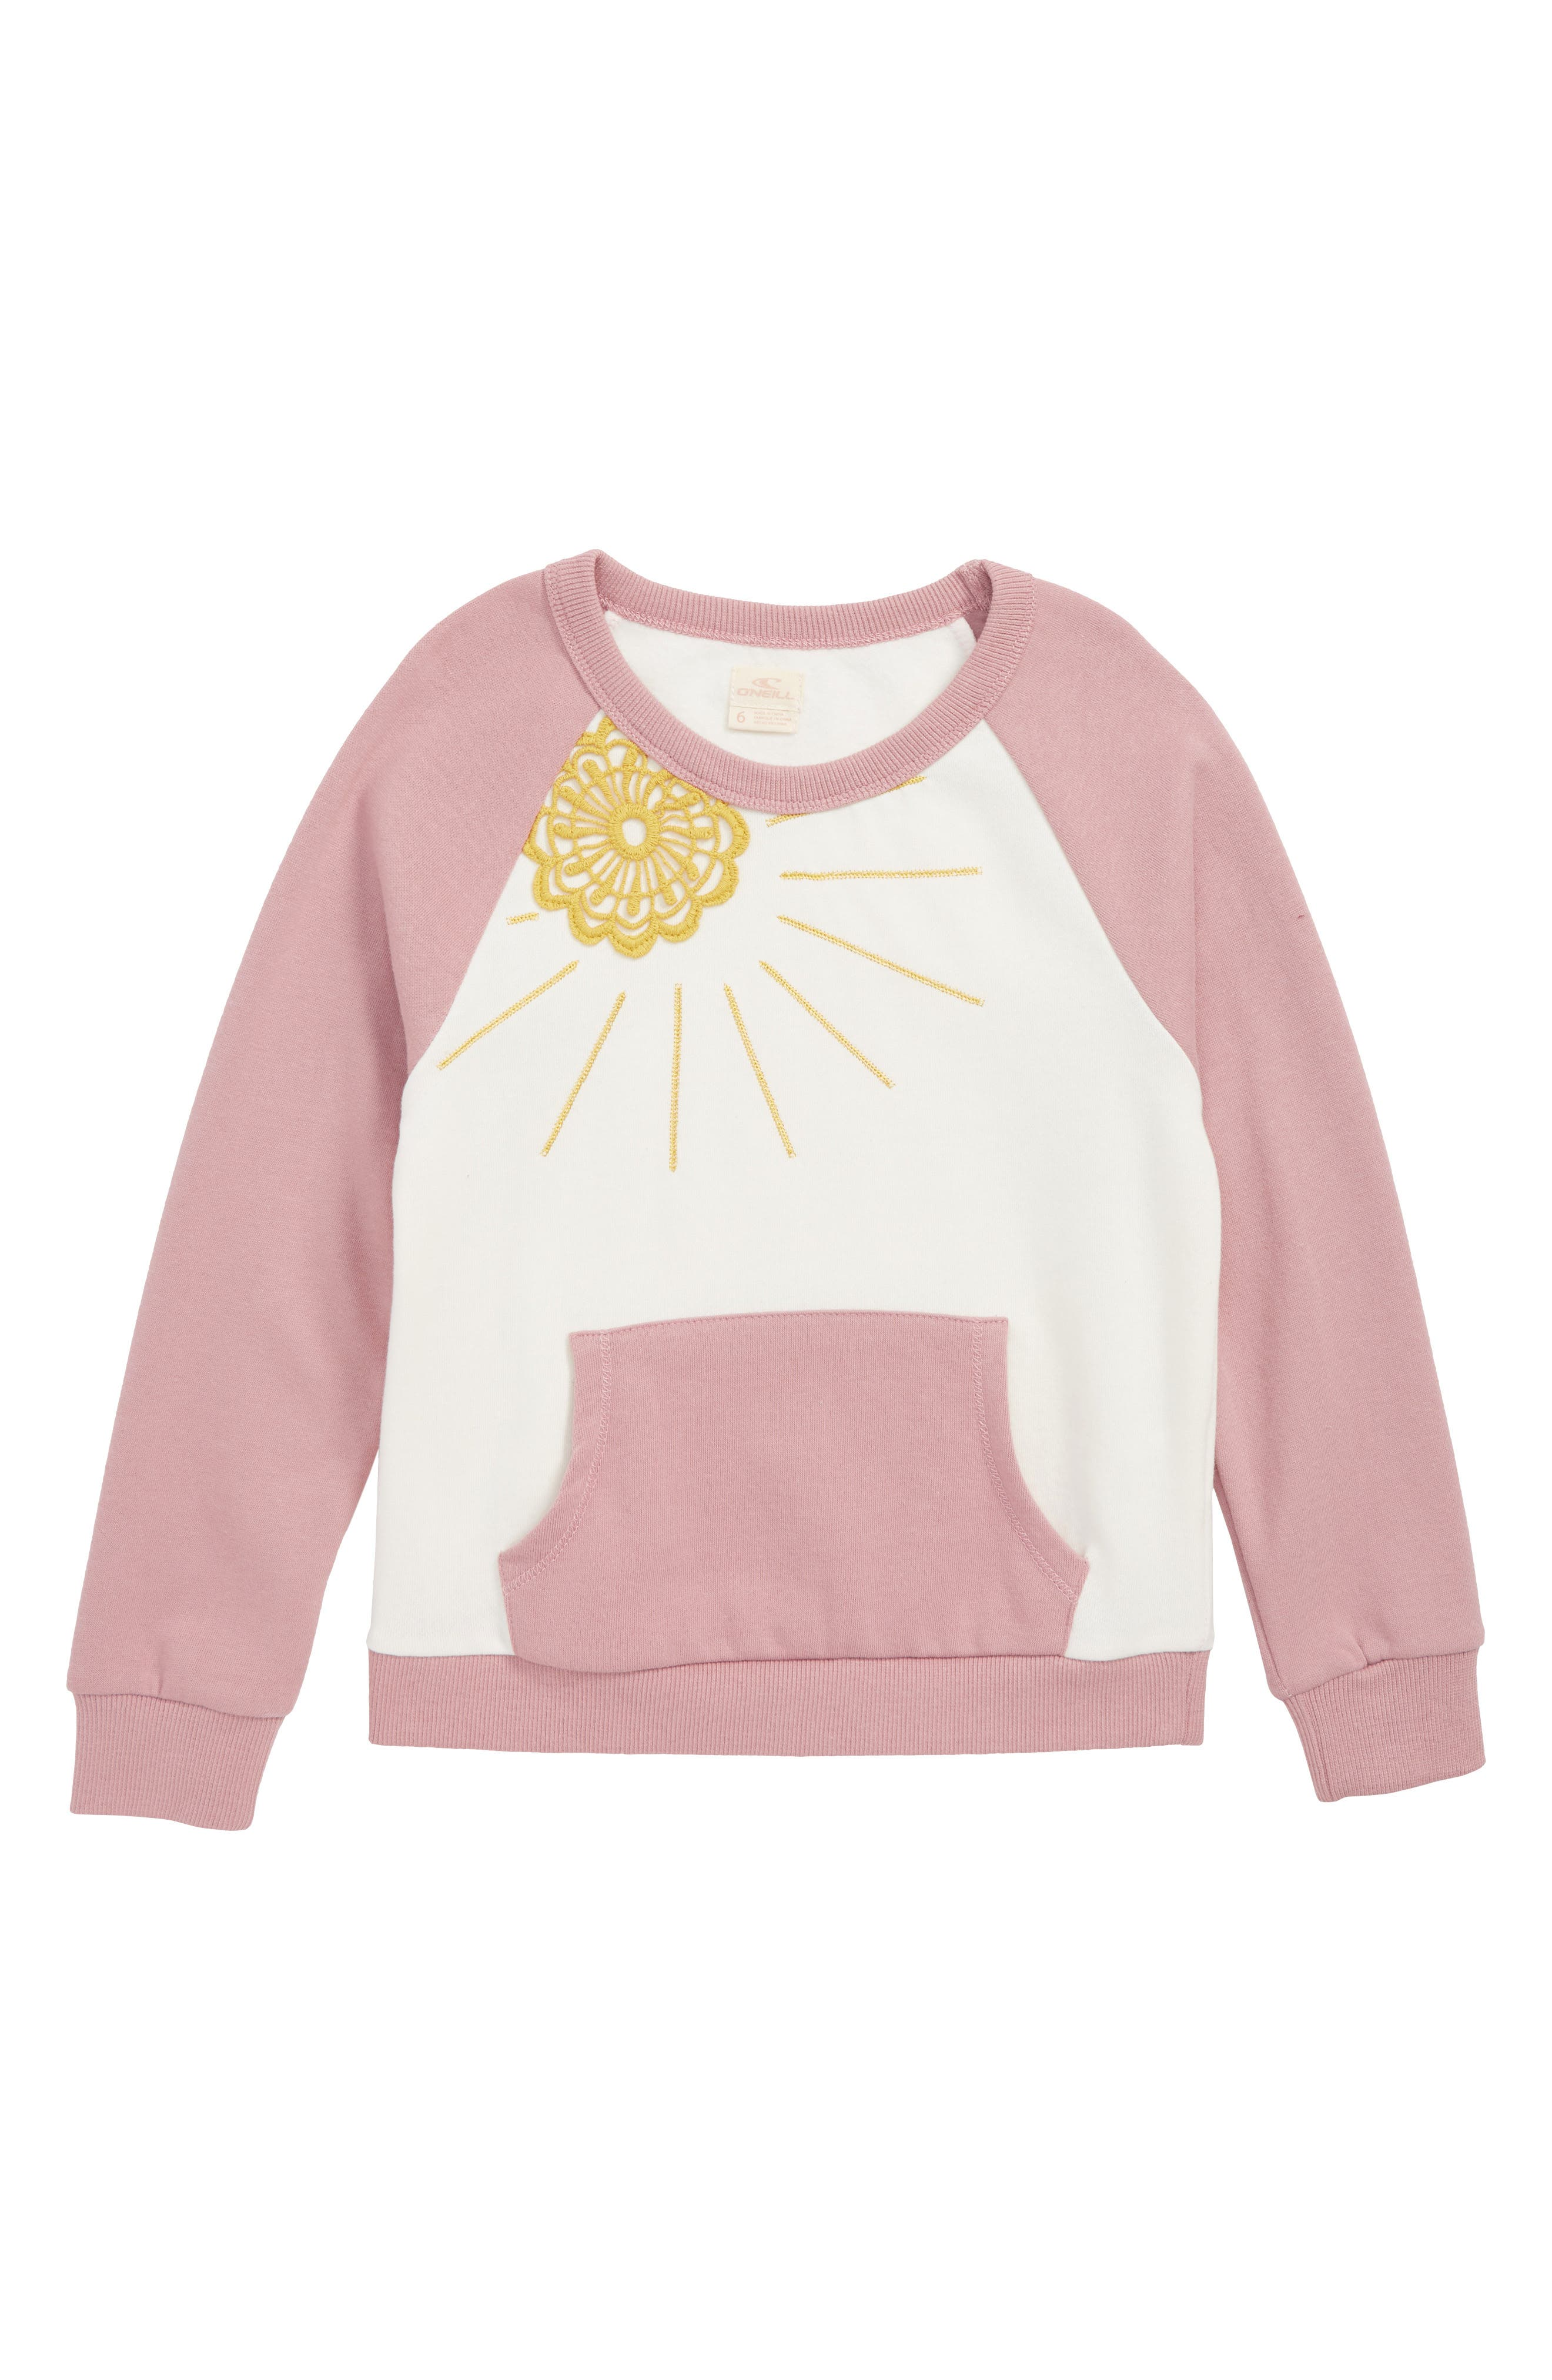 Sol Embroidered Sweatshirt,                             Main thumbnail 1, color,                             506